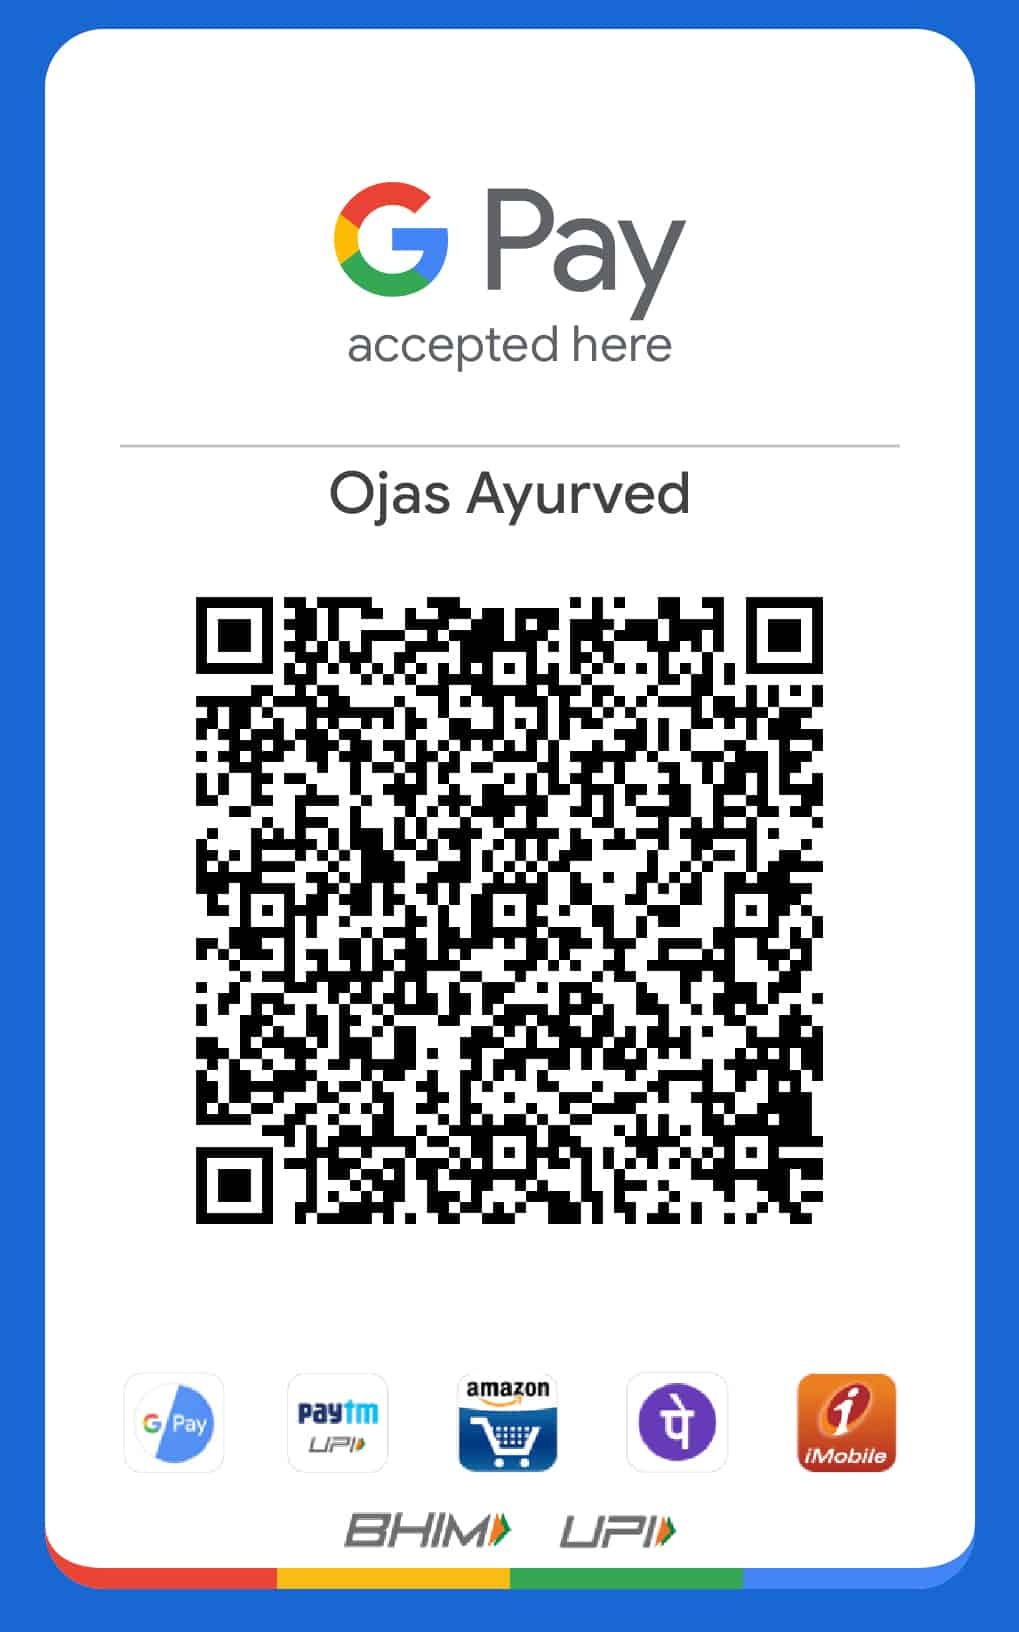 Paying to Ojas Ayurved